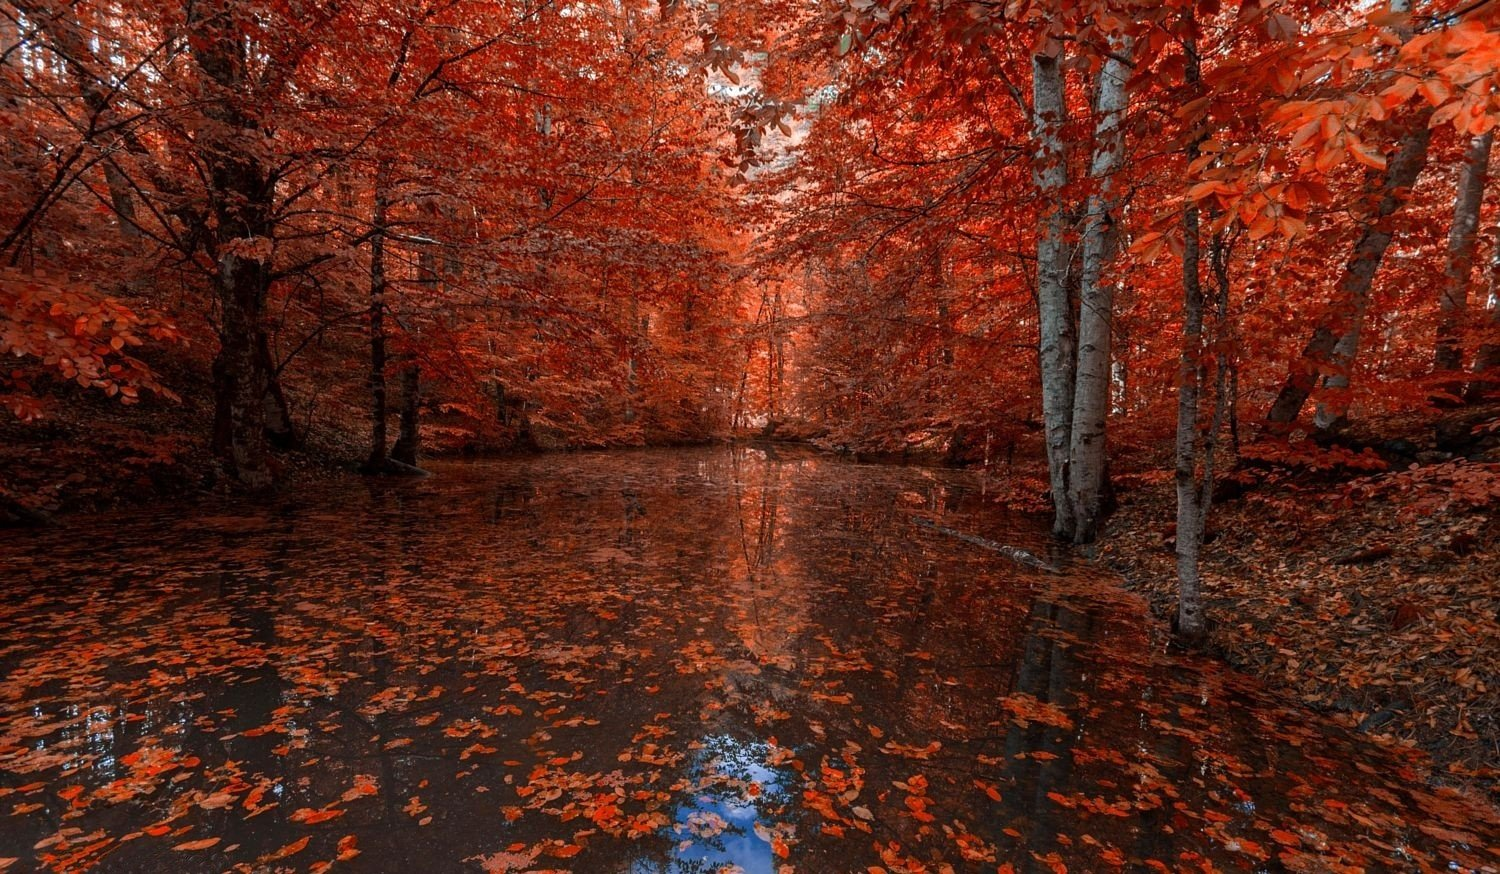 Labels Red Autumn Leaves Photography Hd Wallpapers For: Nature, Photography, Landscape, Fall, Red Leaves, River